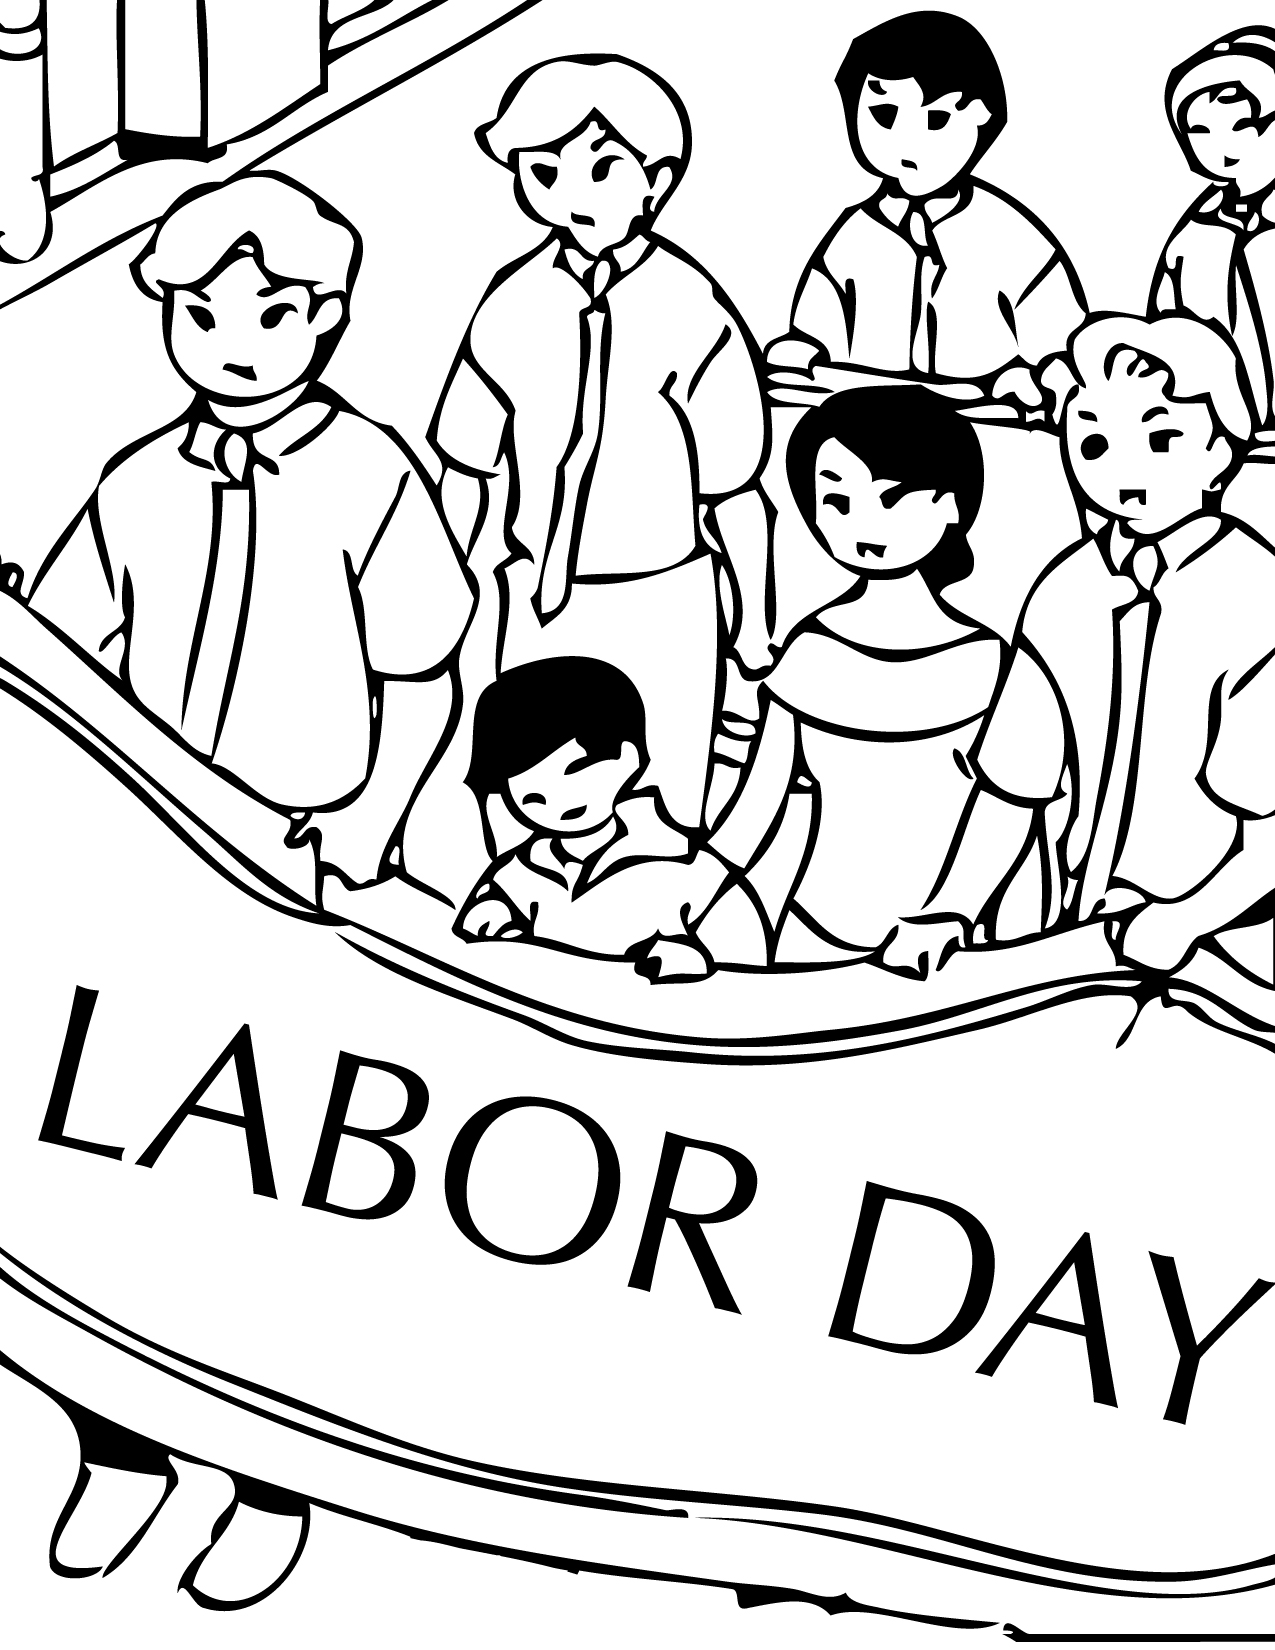 labor day coloring pages free printable free printable labor day coloring pages printable day coloring pages labor free